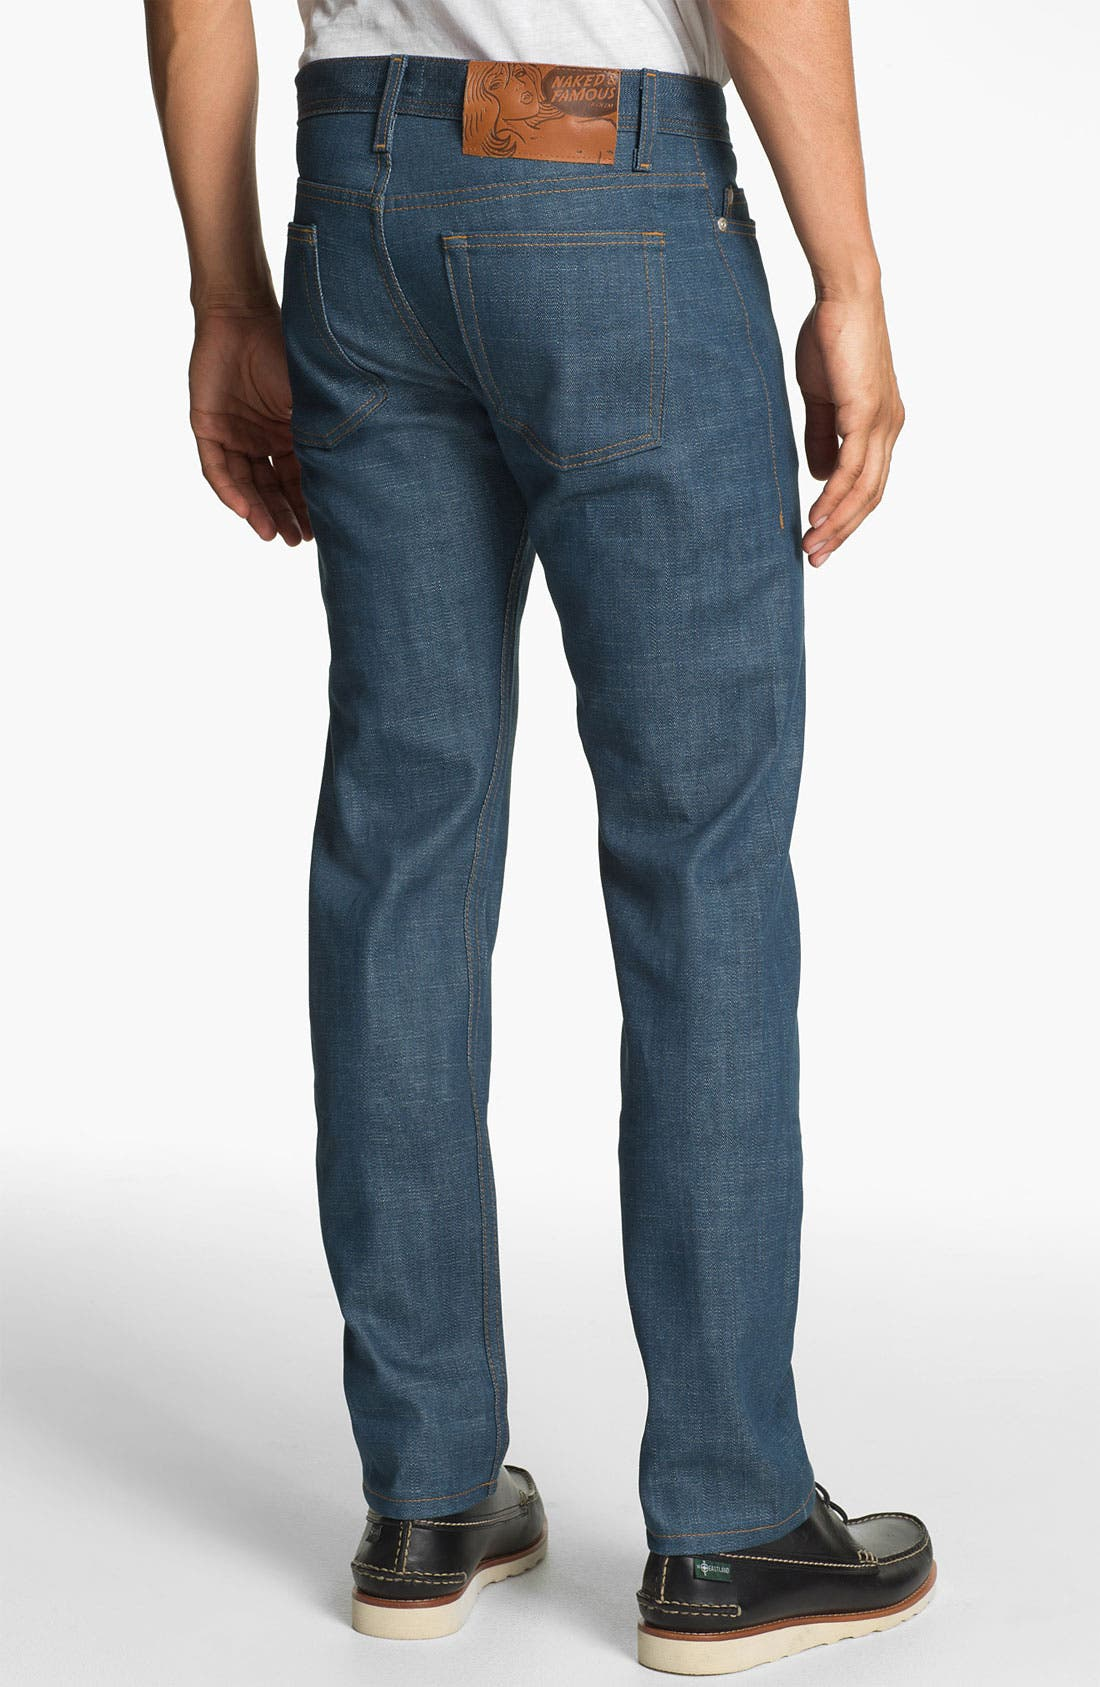 Alternate Image 1 Selected - Naked & Famous Denim 'Weird Guy' Slim Tapered Leg Broken Twill Selvedge Jeans (Royal Blue)